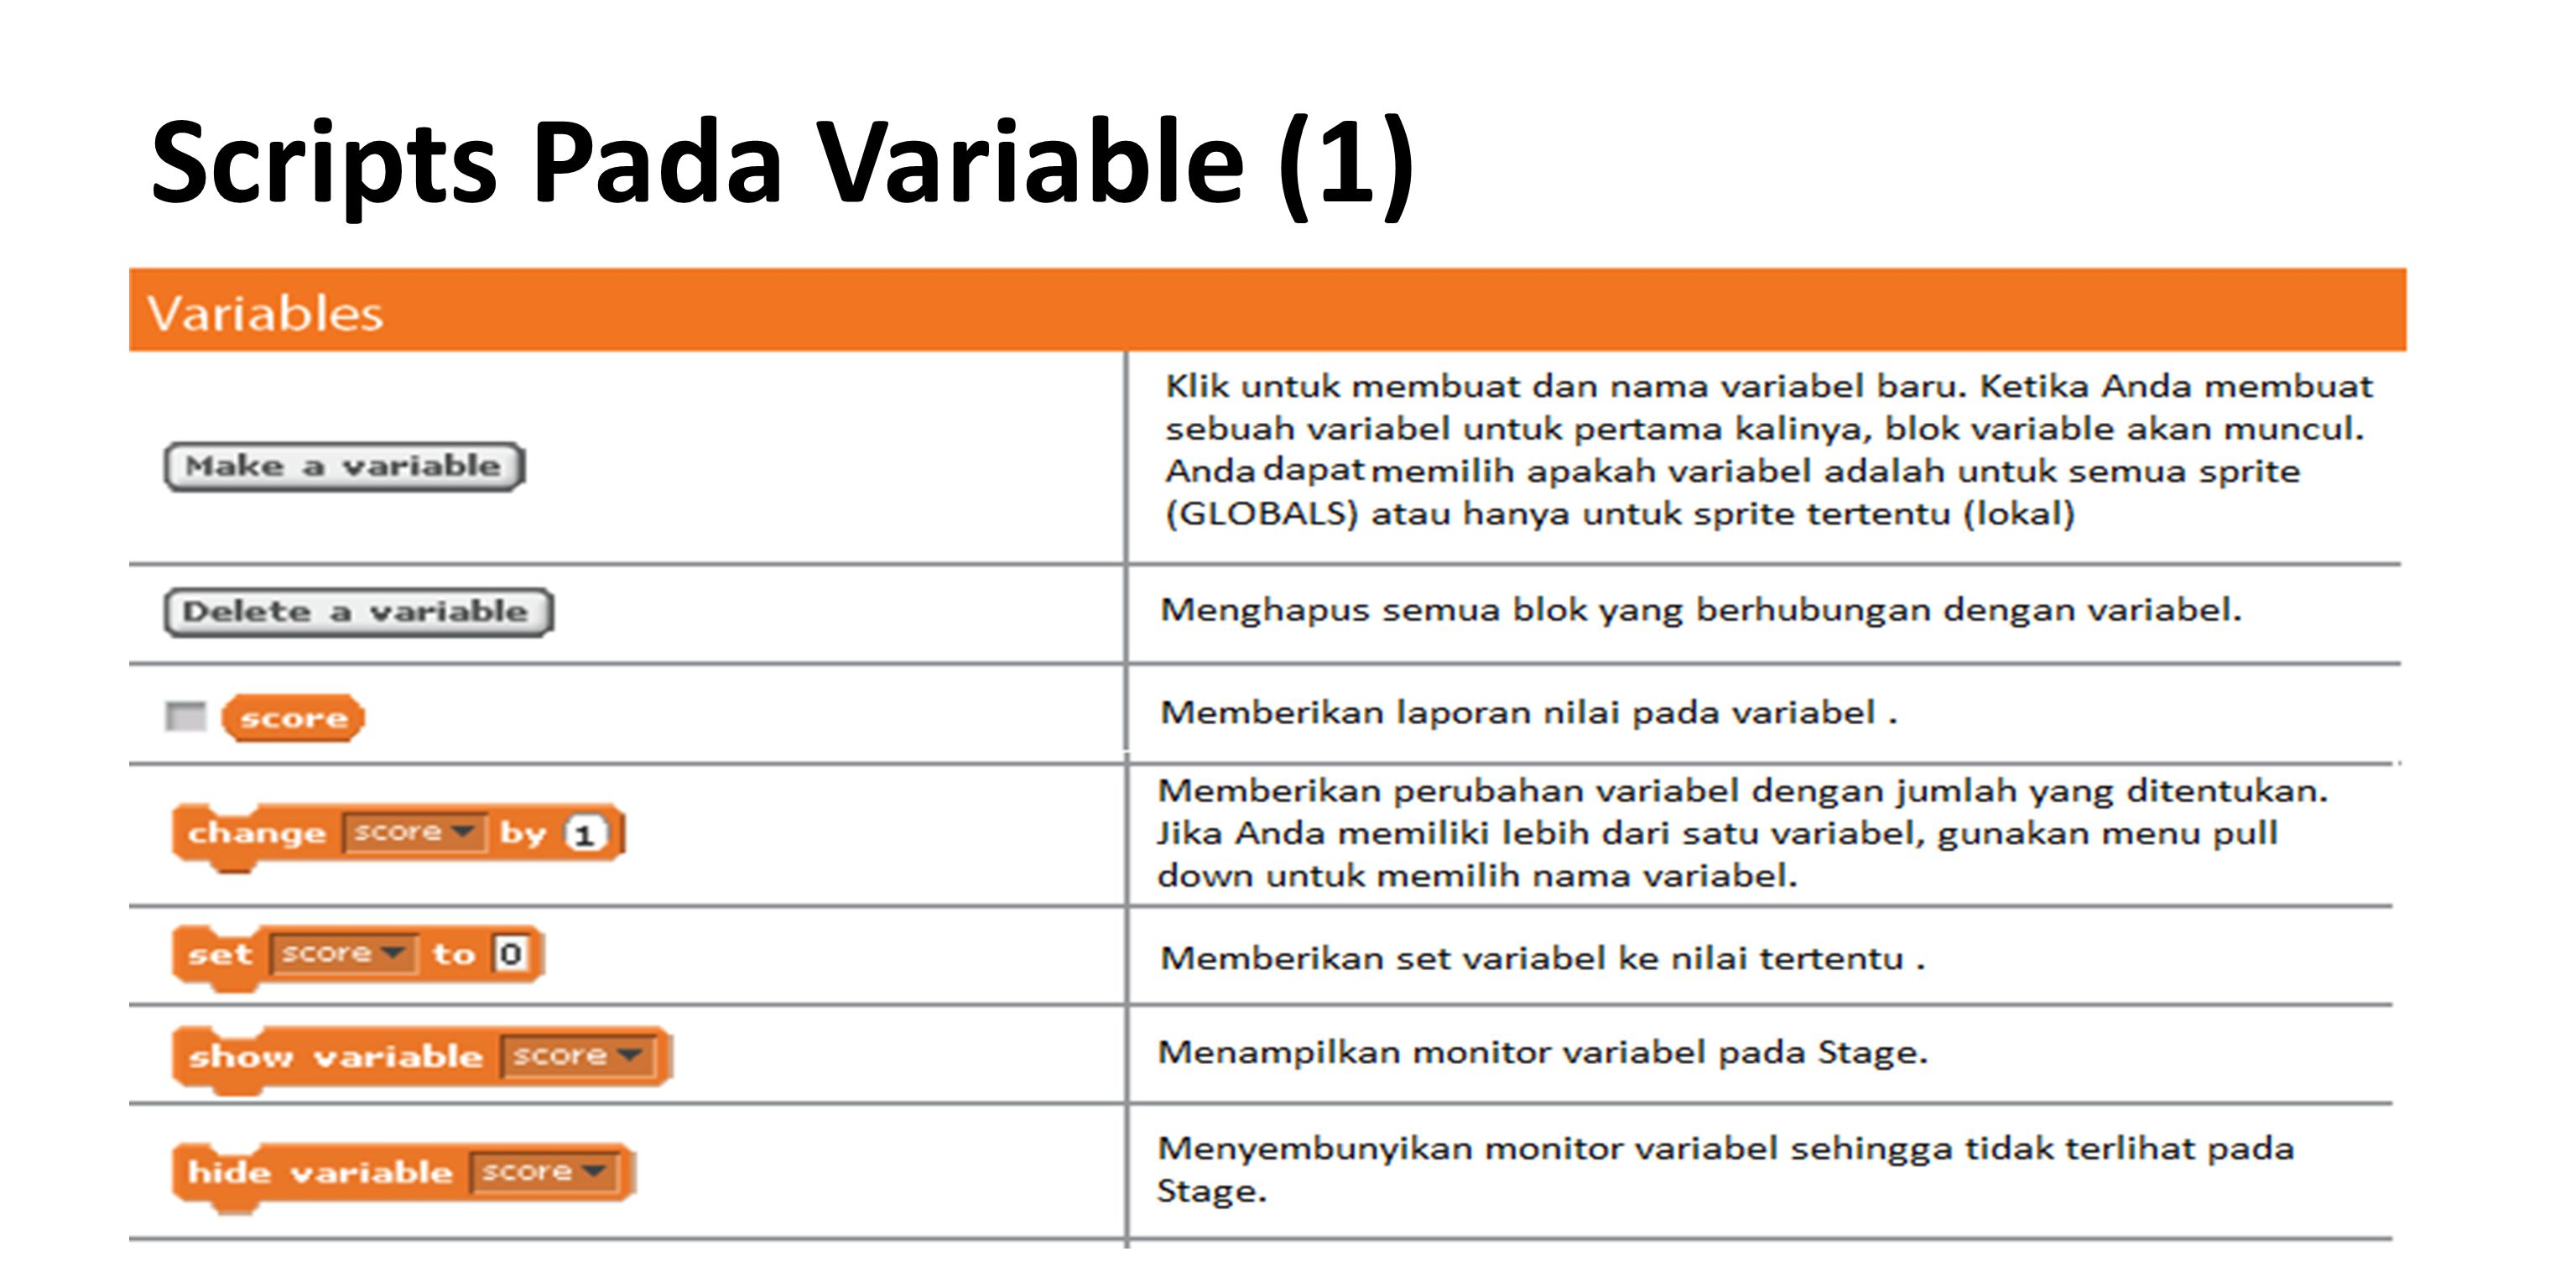 Scripts Pada Variable (1)